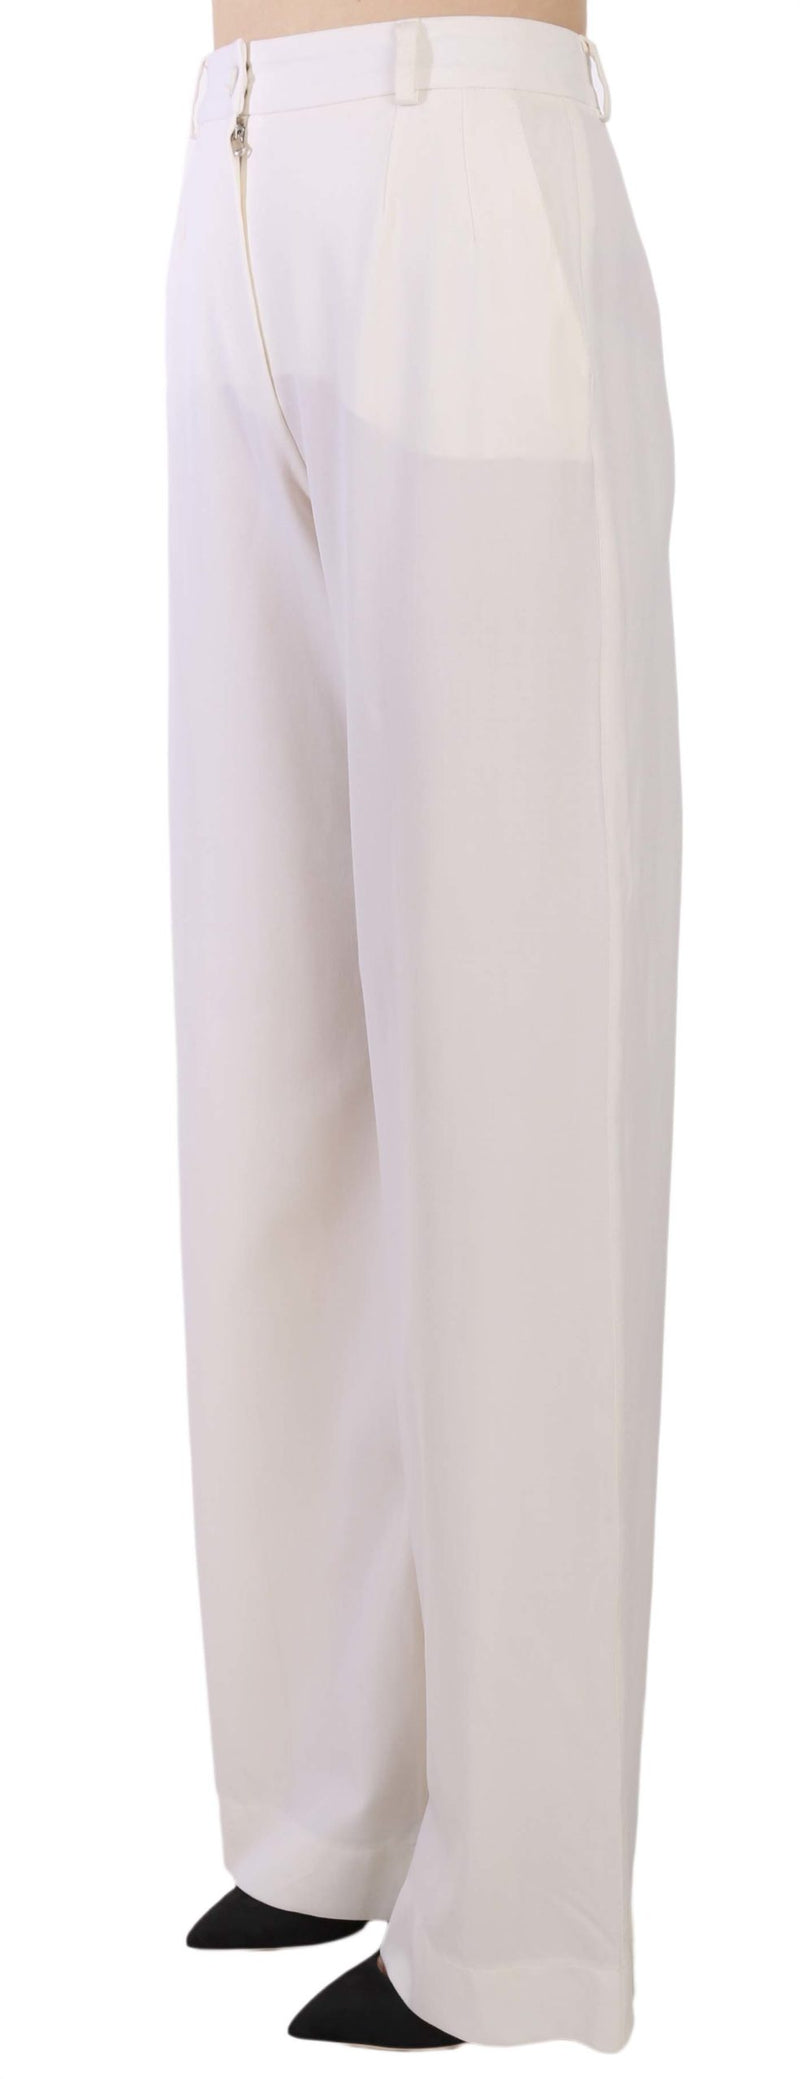 White Virgin Wool Wide Leg Trousers Pants